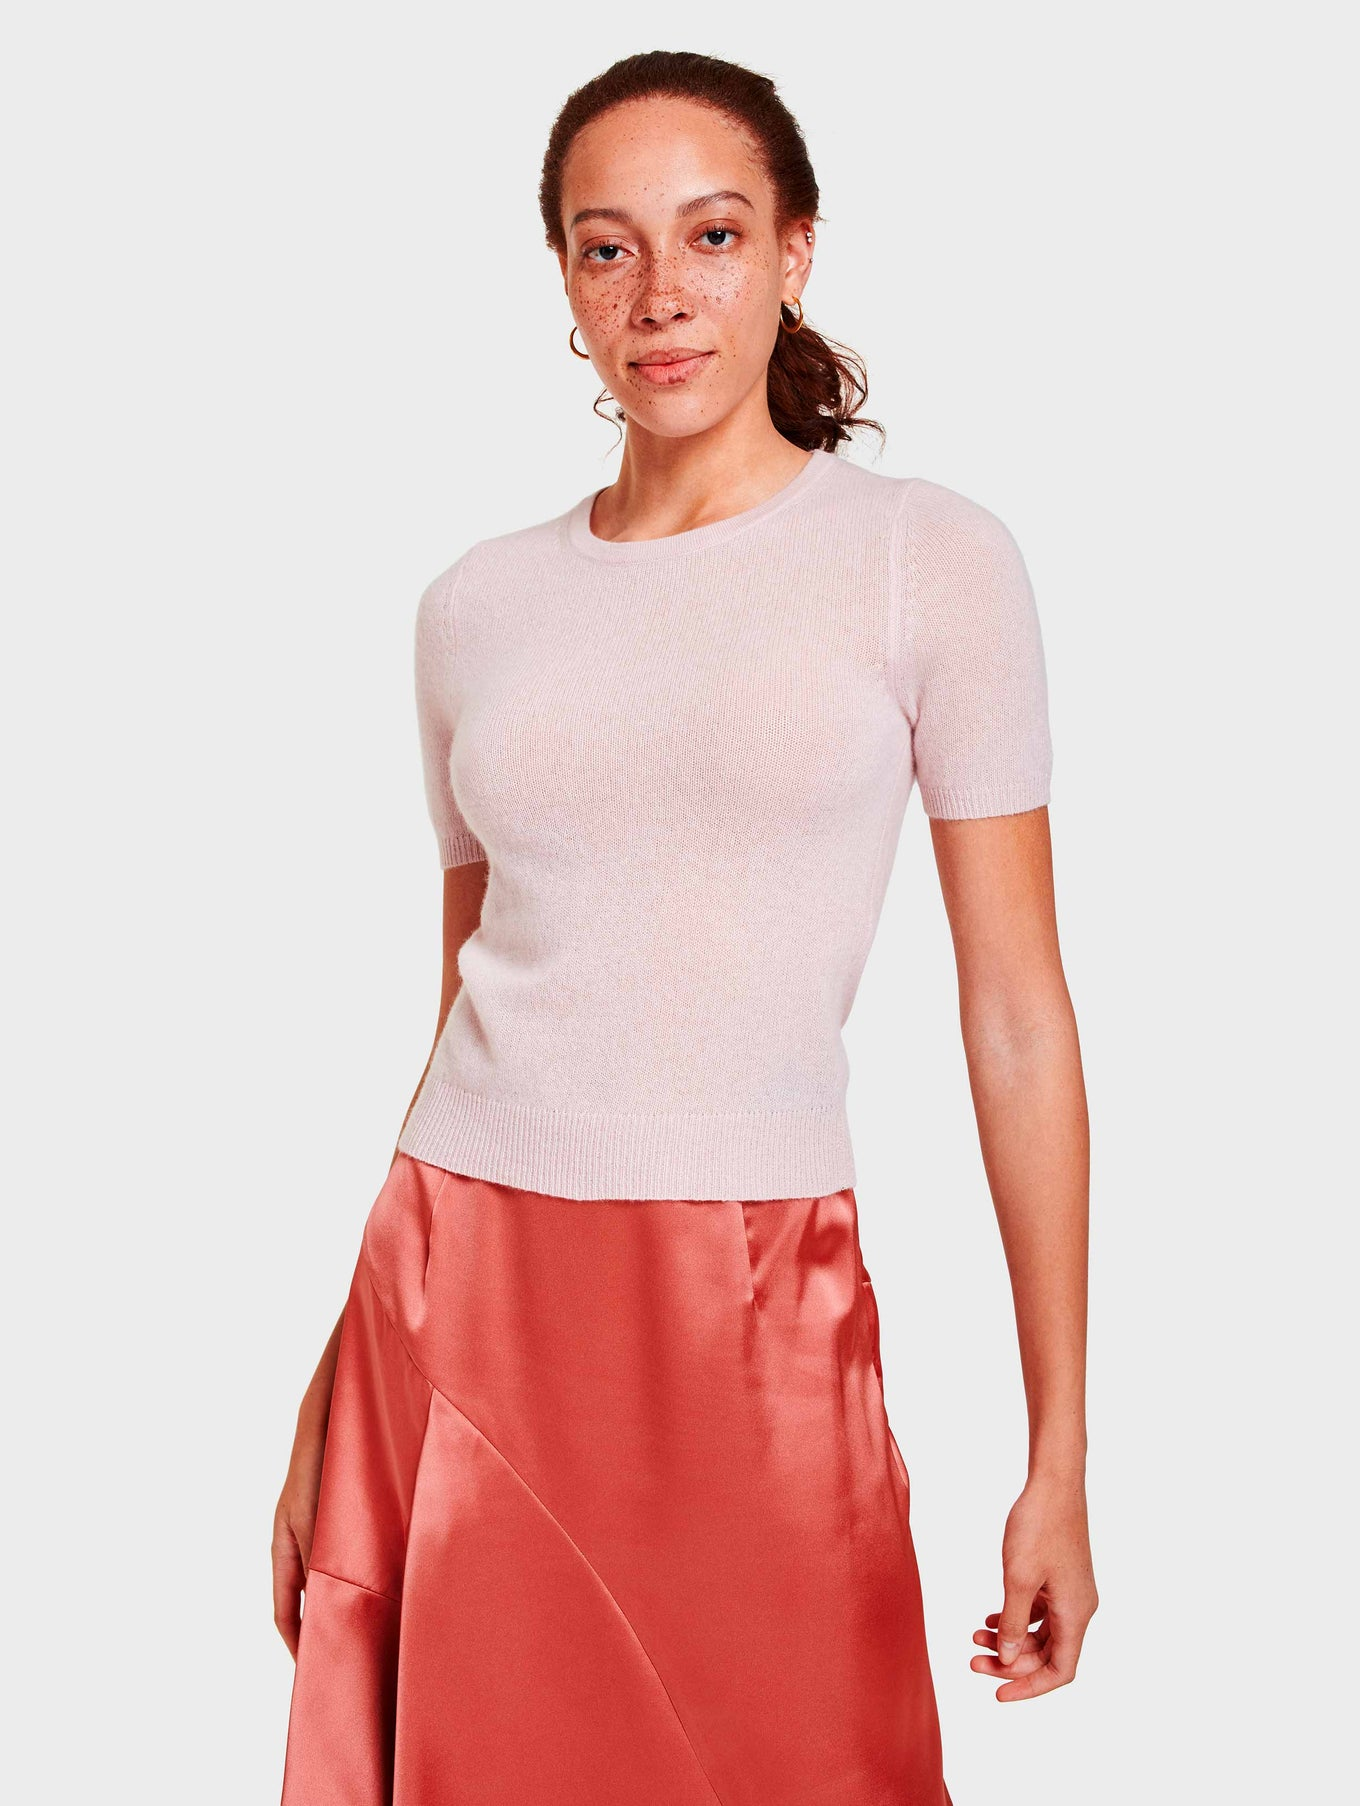 Cashmere Fitted Tee - Blooming Pink Heather - Image 2